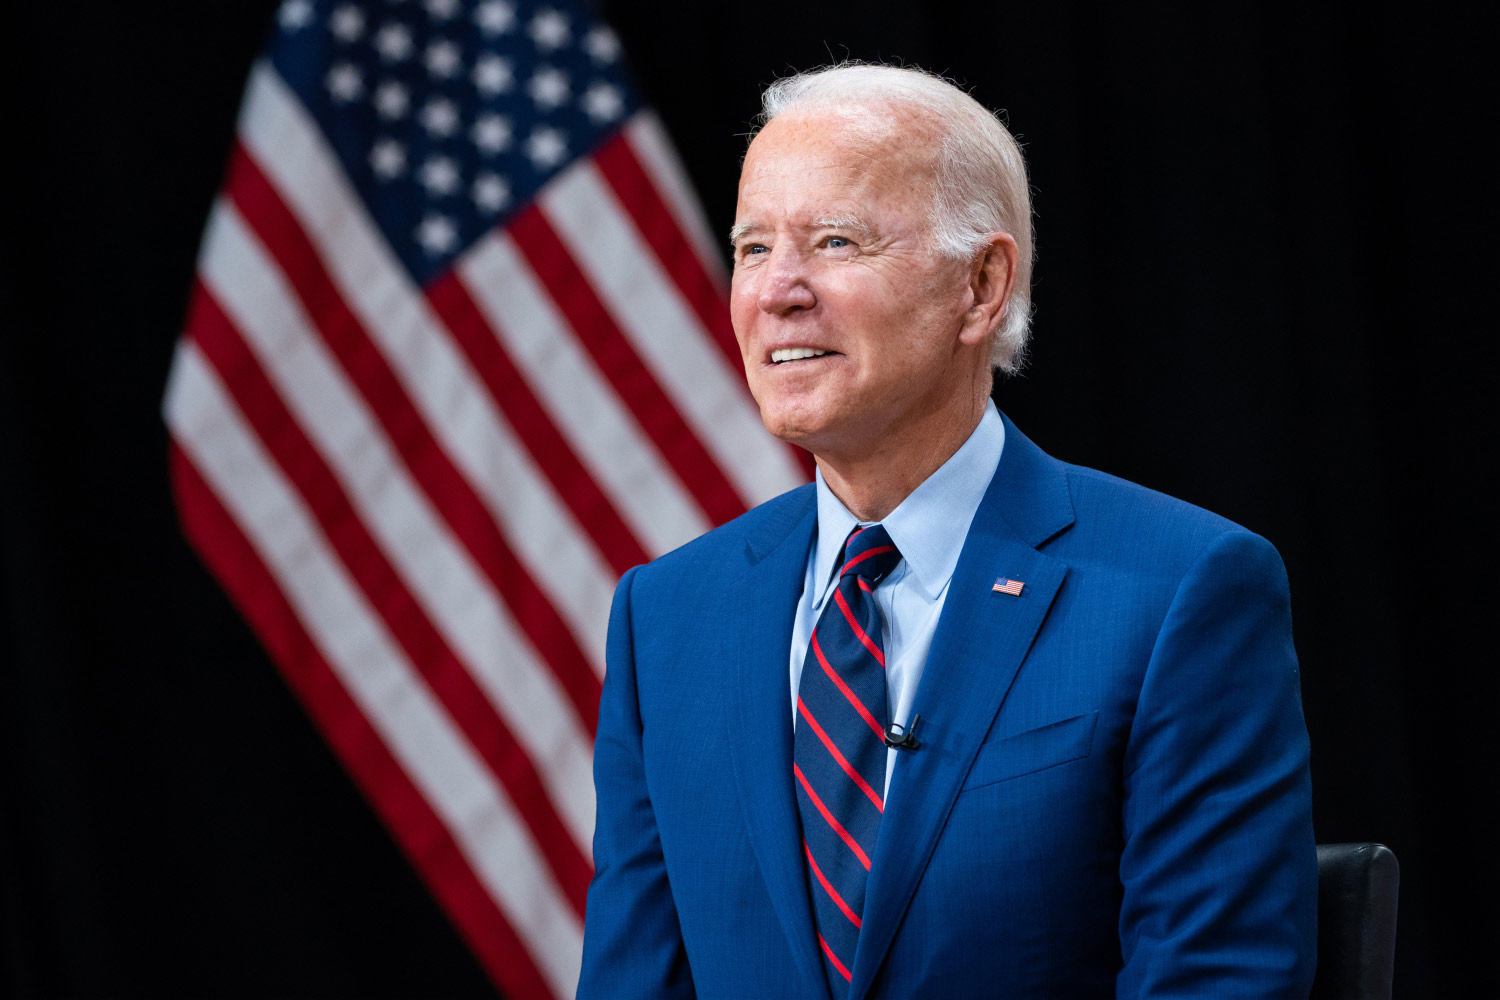 President Joe Biden wearing a suit, standing in front of an American flag